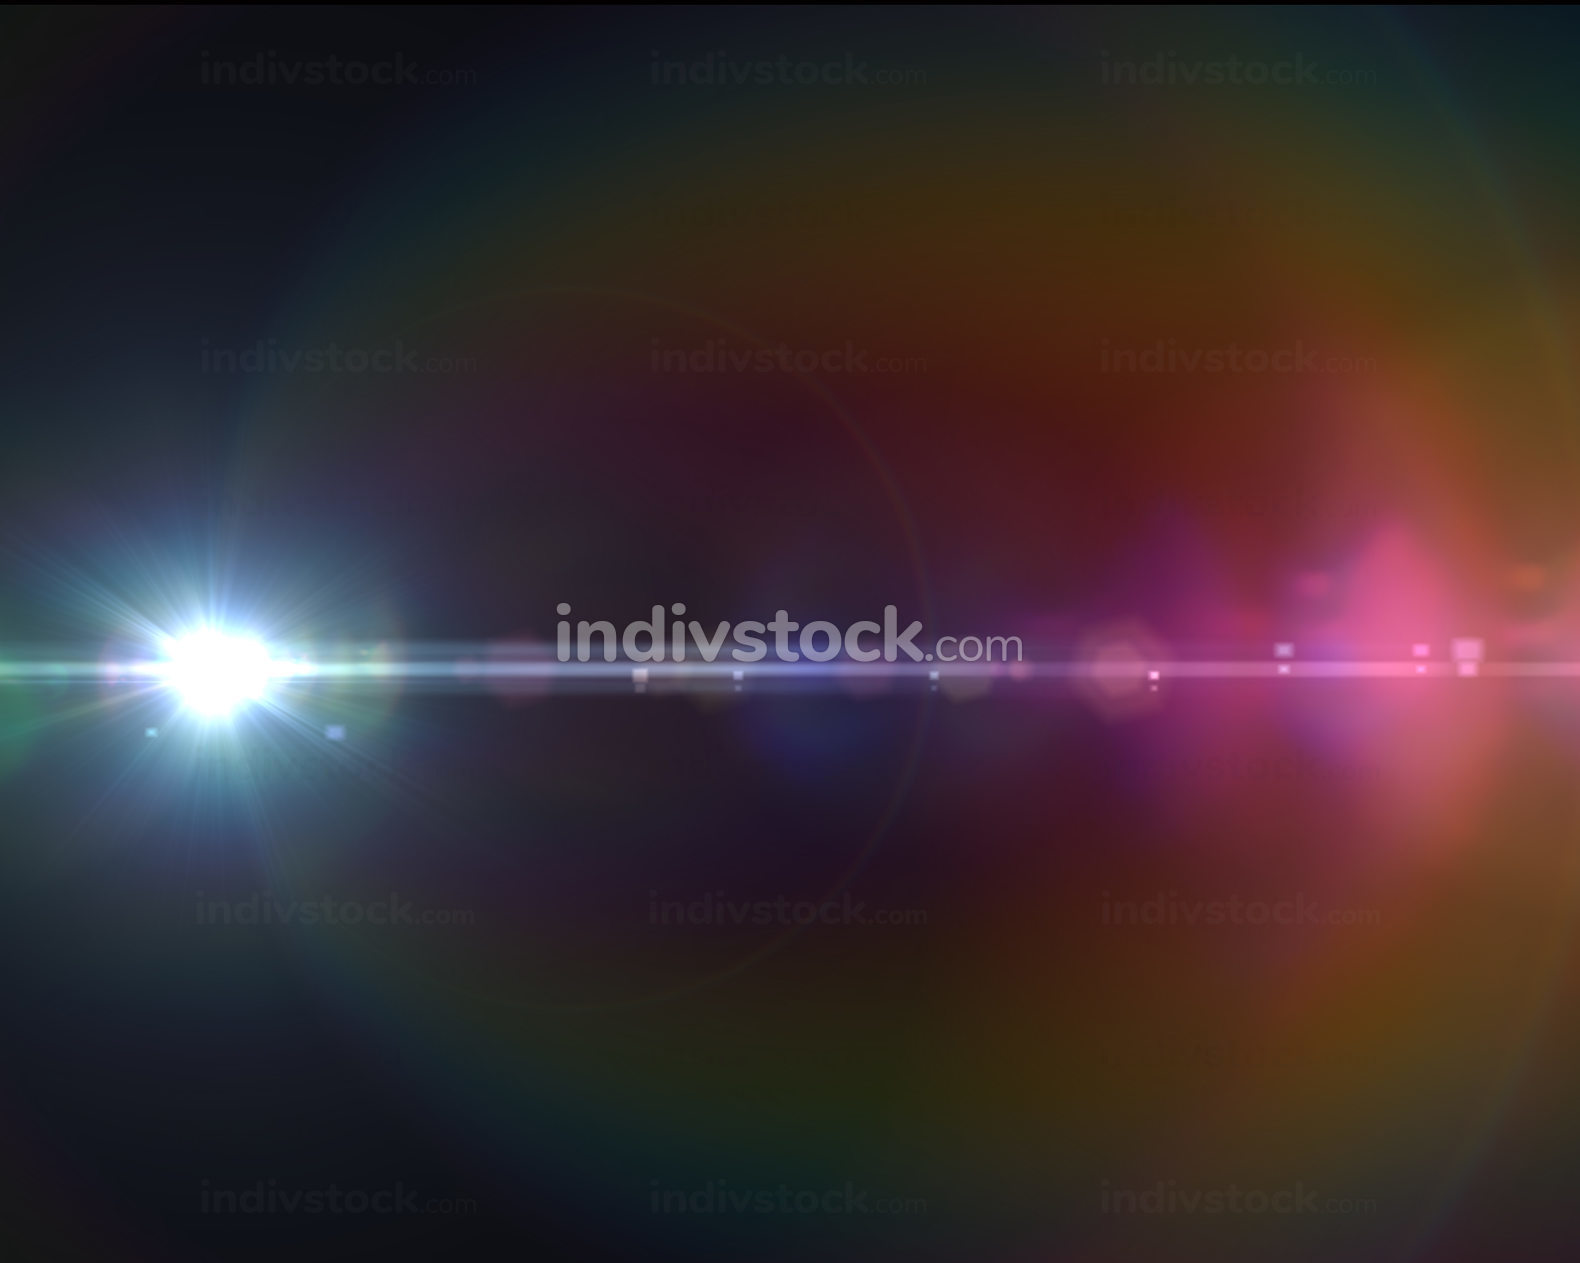 Lens flare effect in space